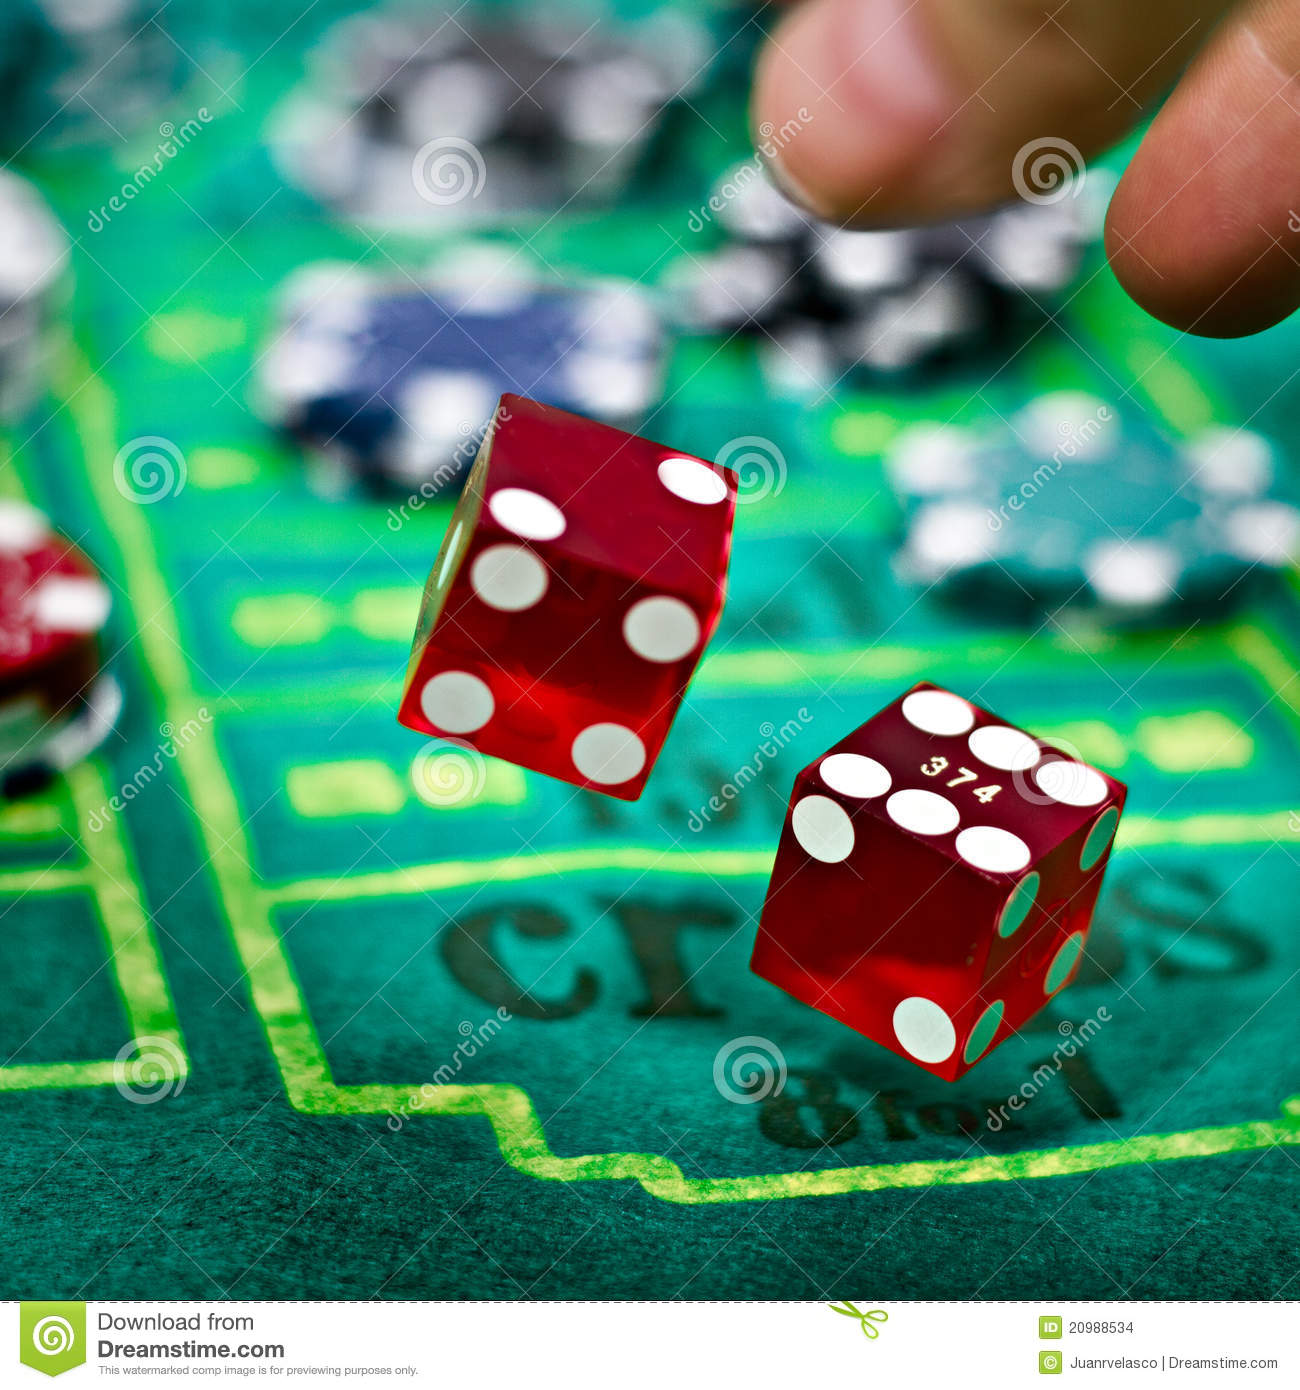 Backgammon Dice Rolling Rules